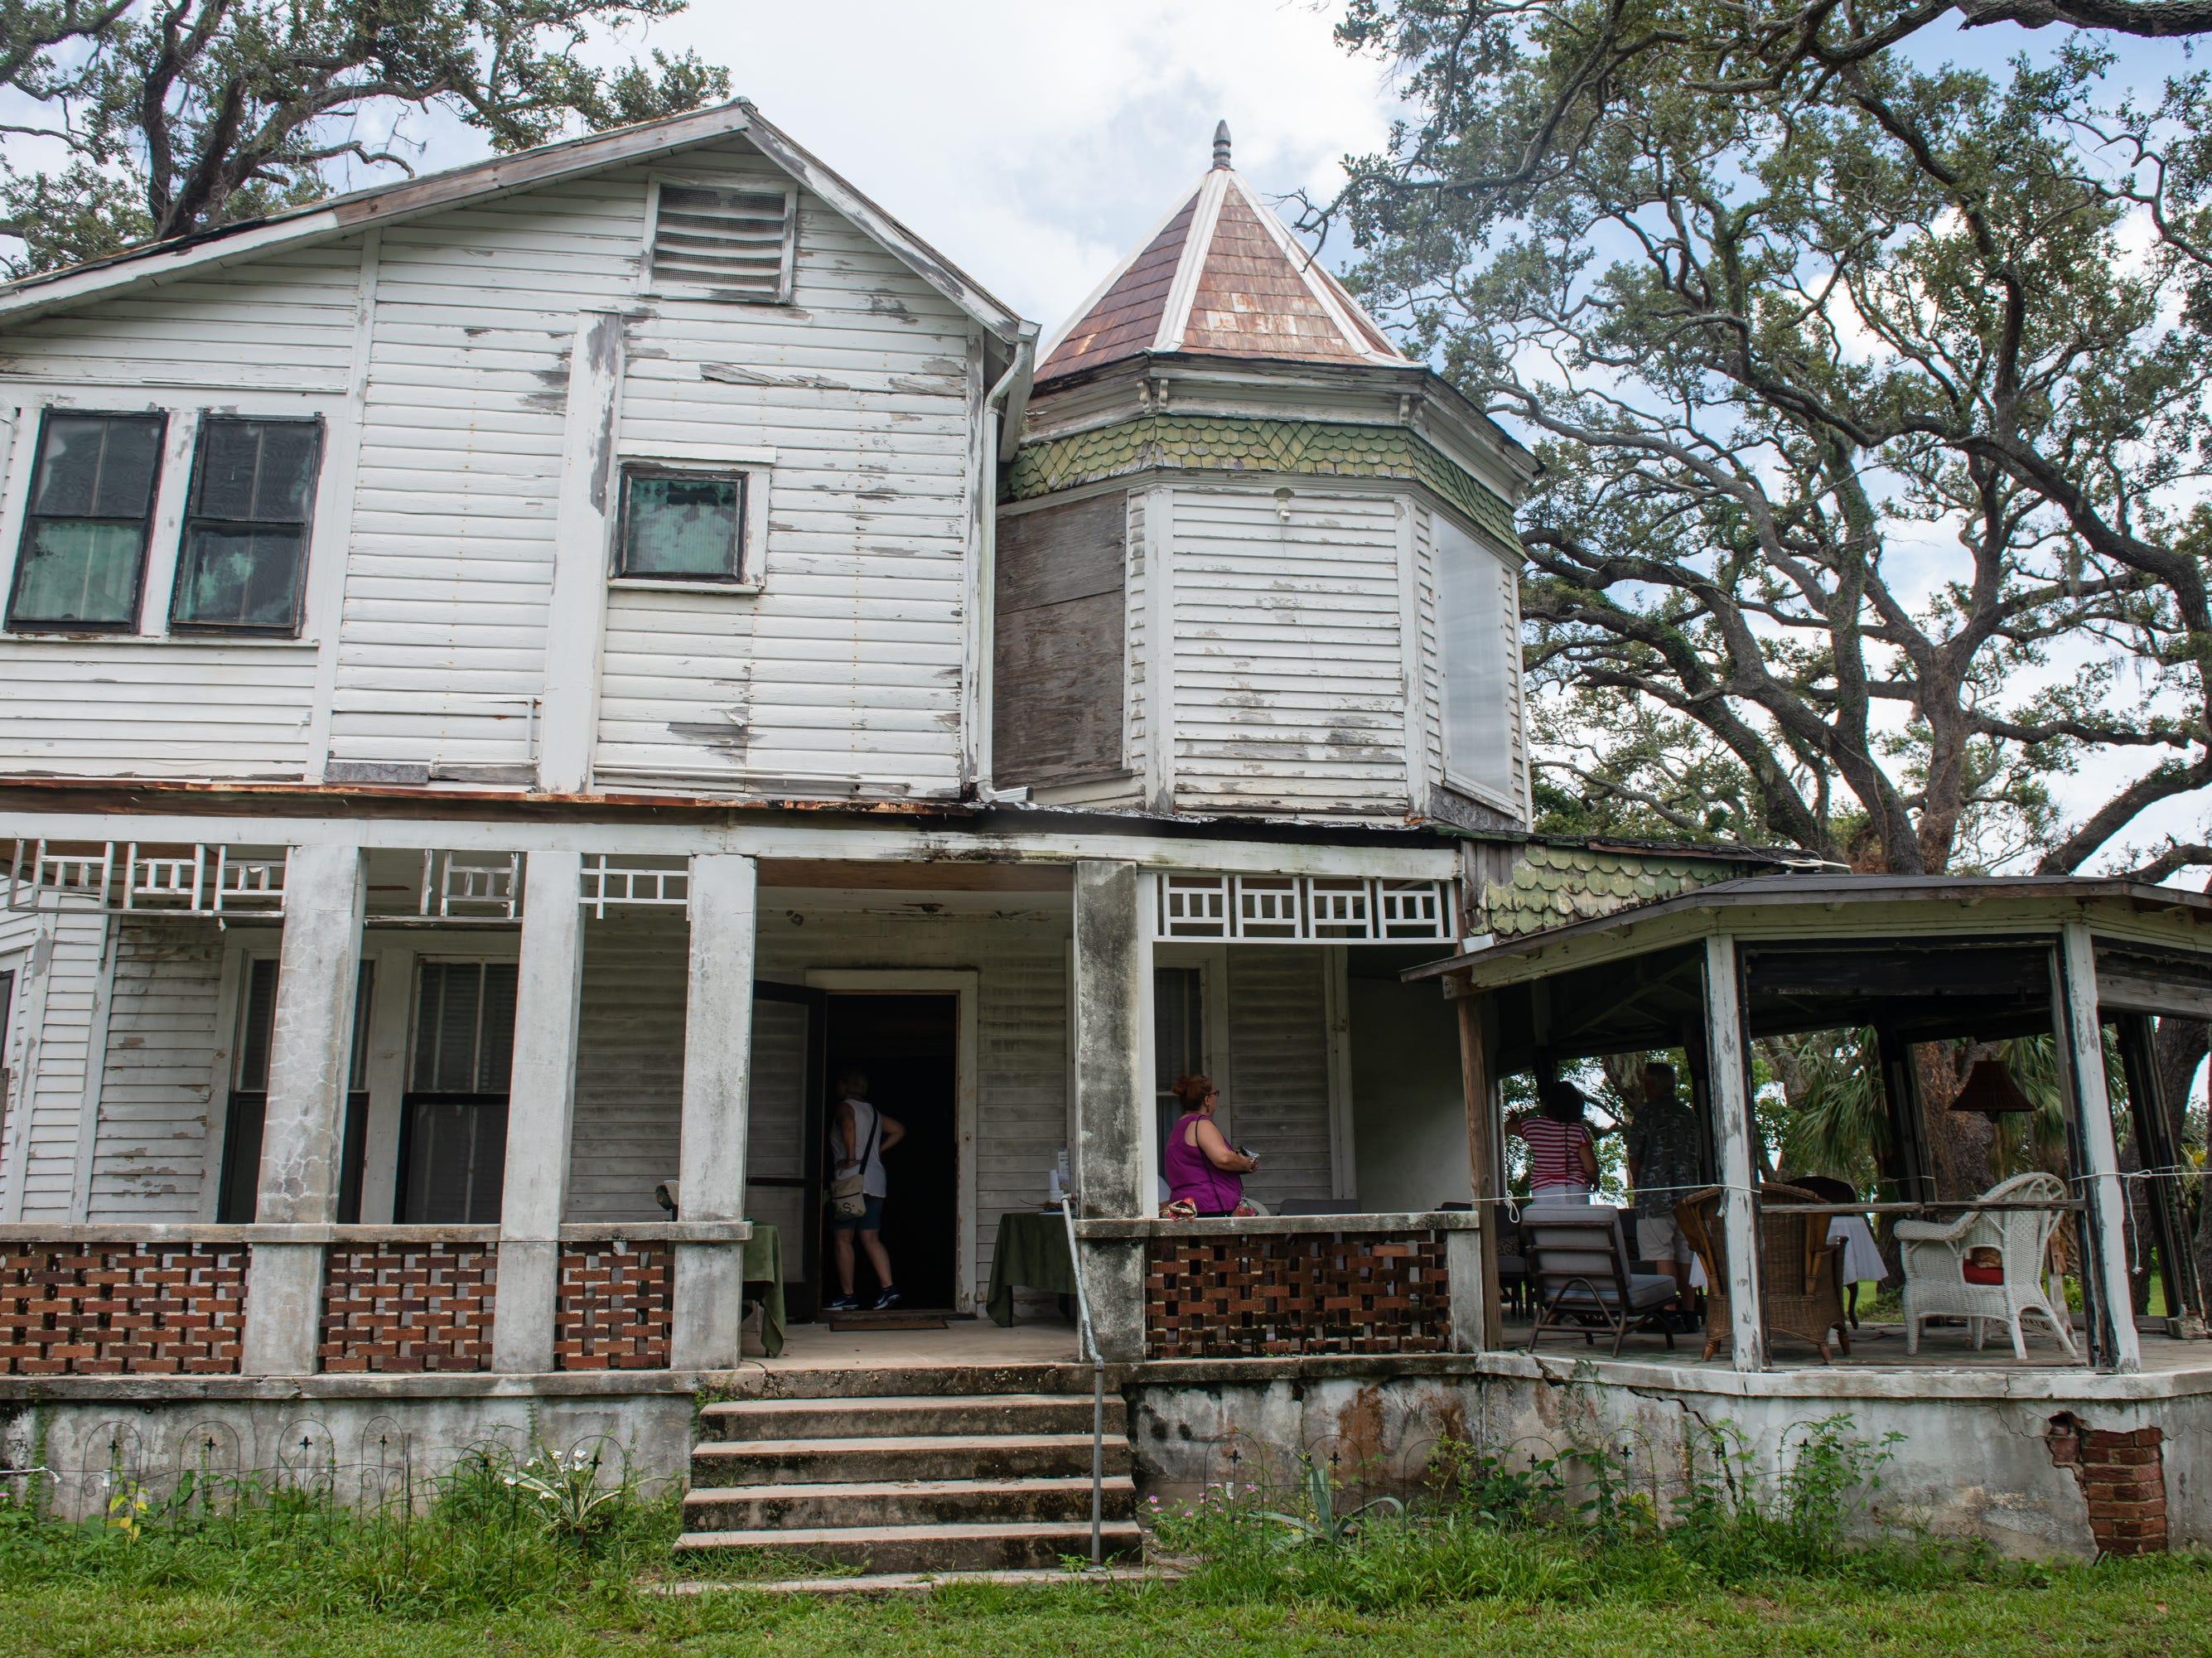 The Christmas in July event, which raised money to restore the Green Gables Victorian house in Melbourne.